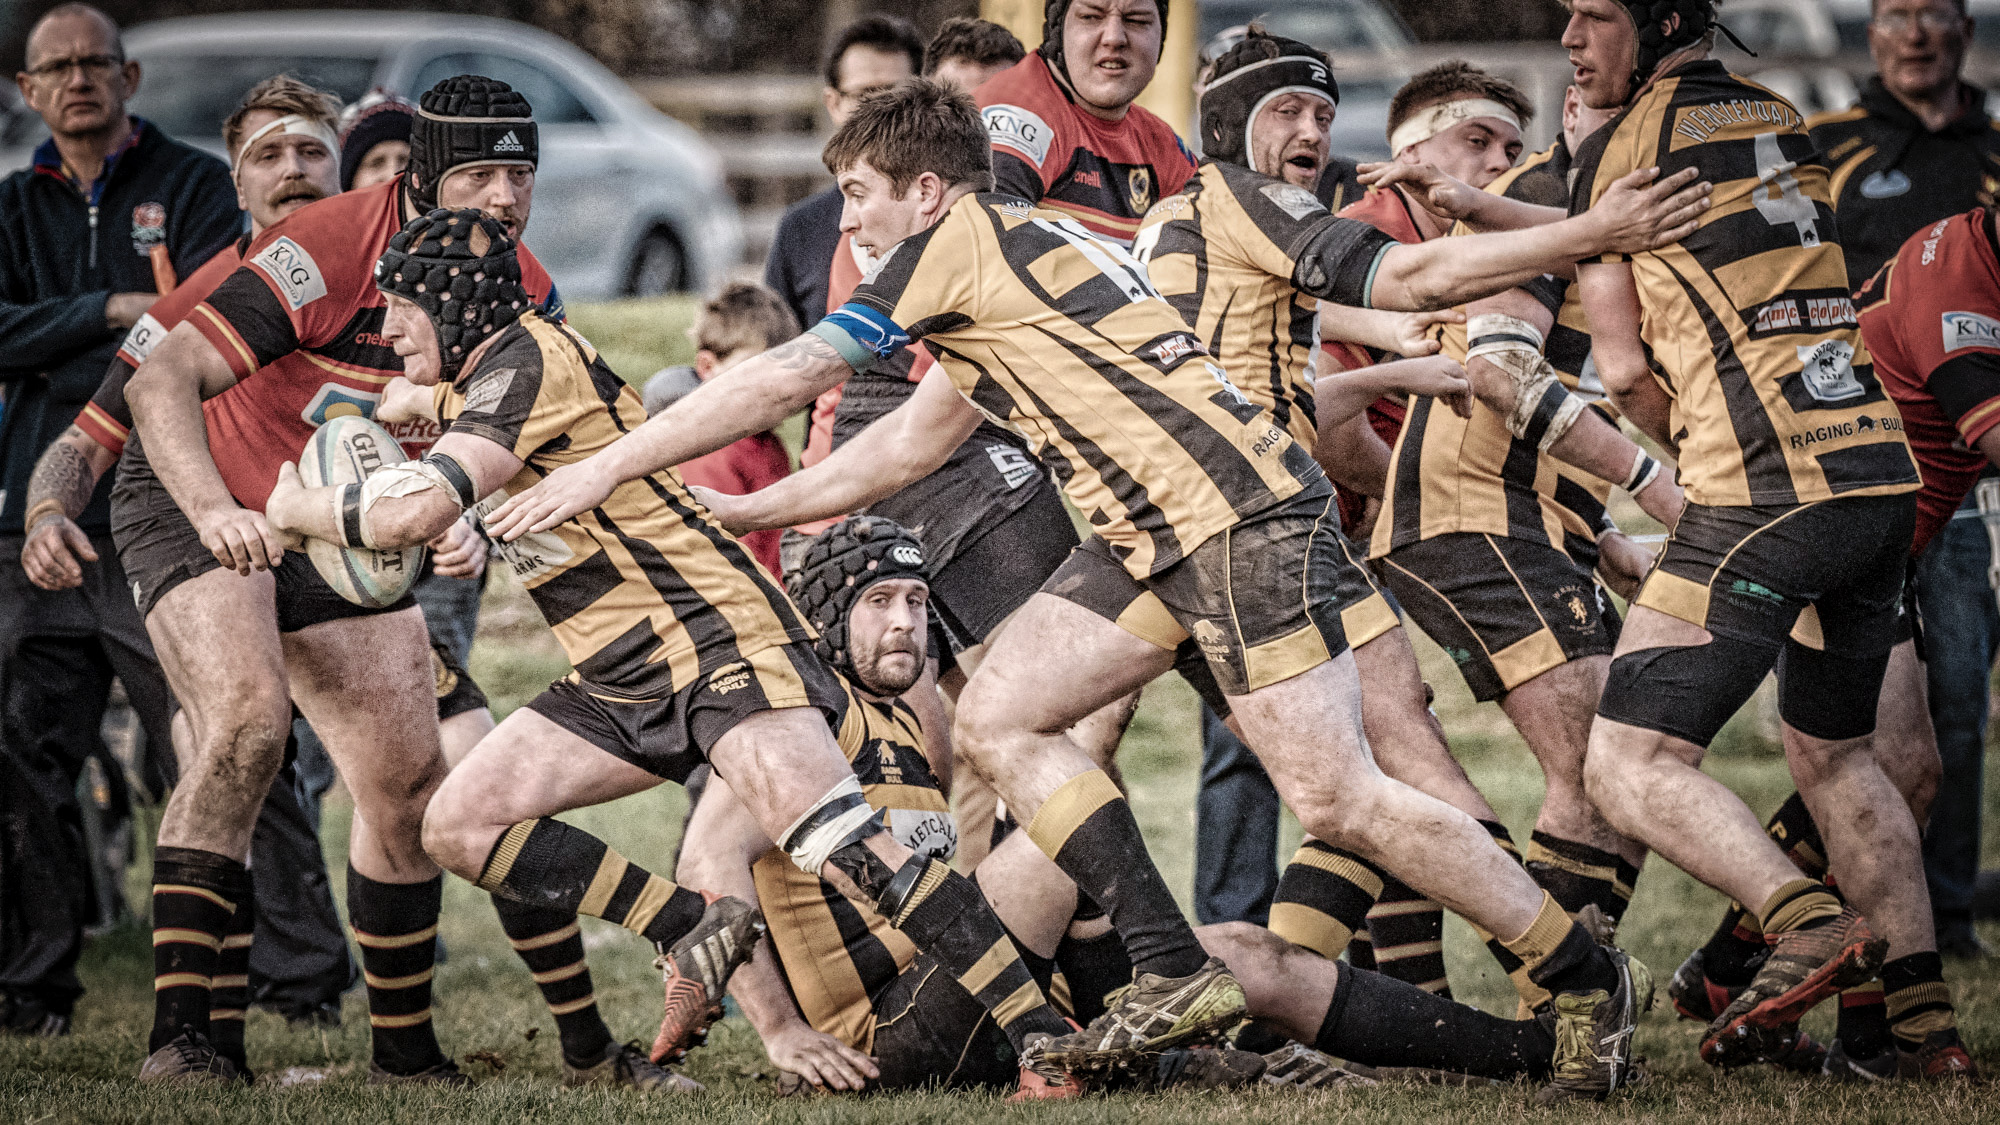 Second Half Run Results In A Try For Wensleydale